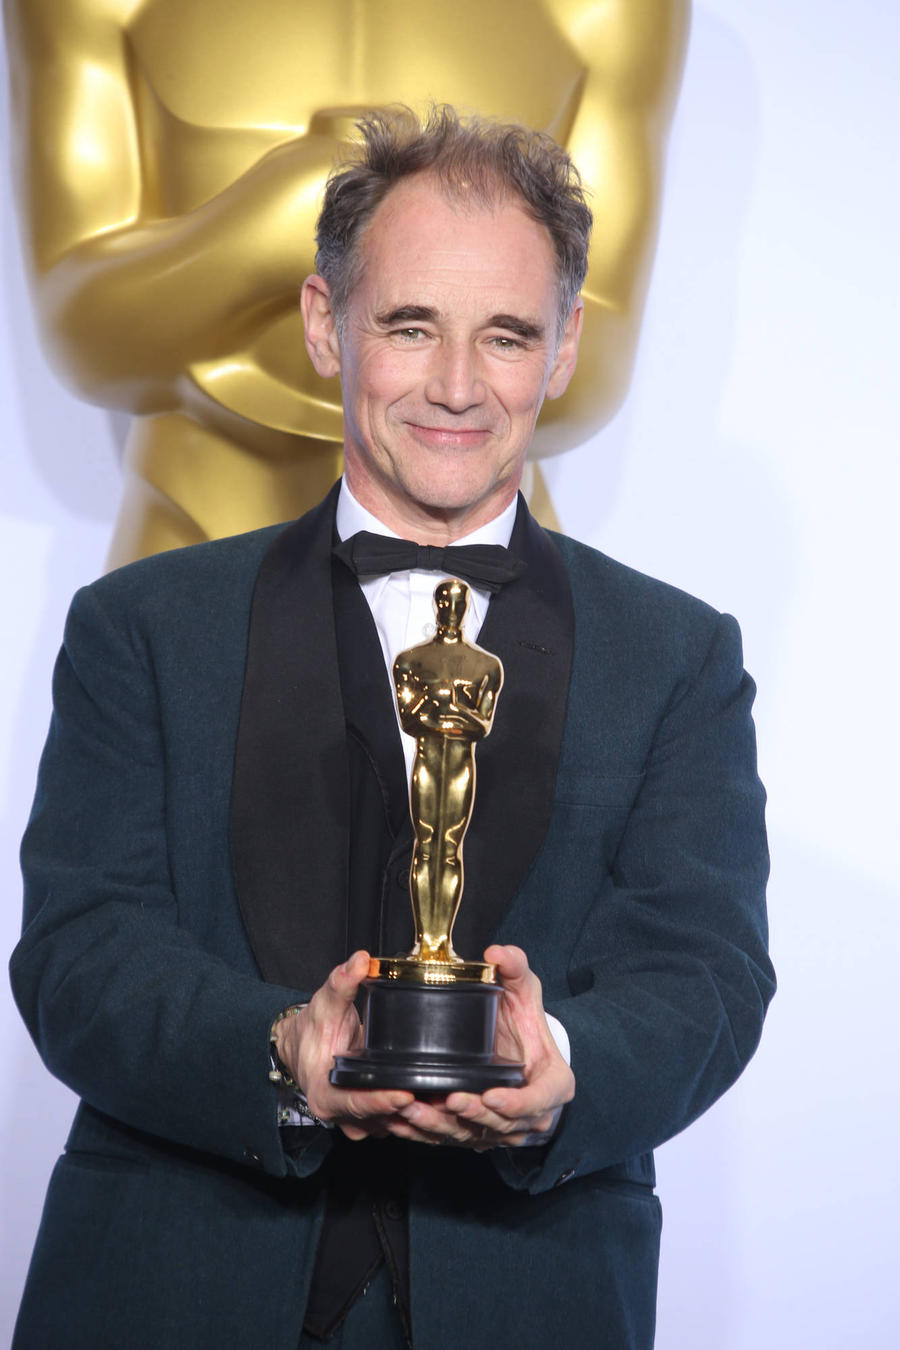 Mark Rylance Up For Olivier Award After Oscar Win